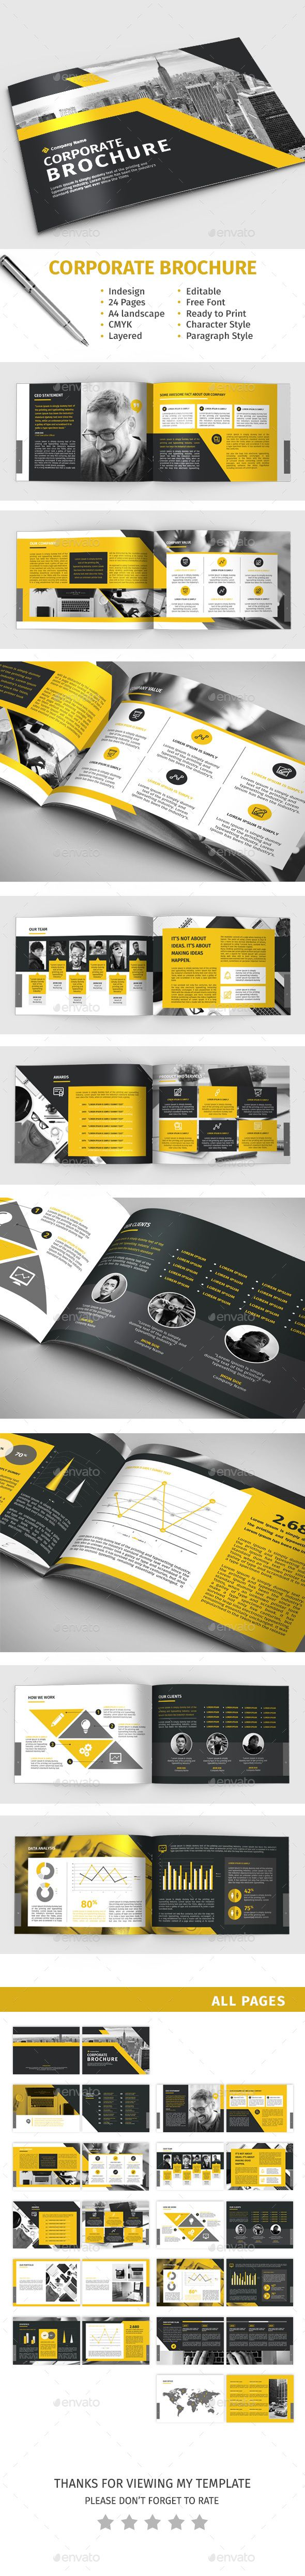 Corporate Brochure Template InDesign INDD. Download here: http://graphicriver.net/item/corporate-brochure/16894723?ref=ksioks